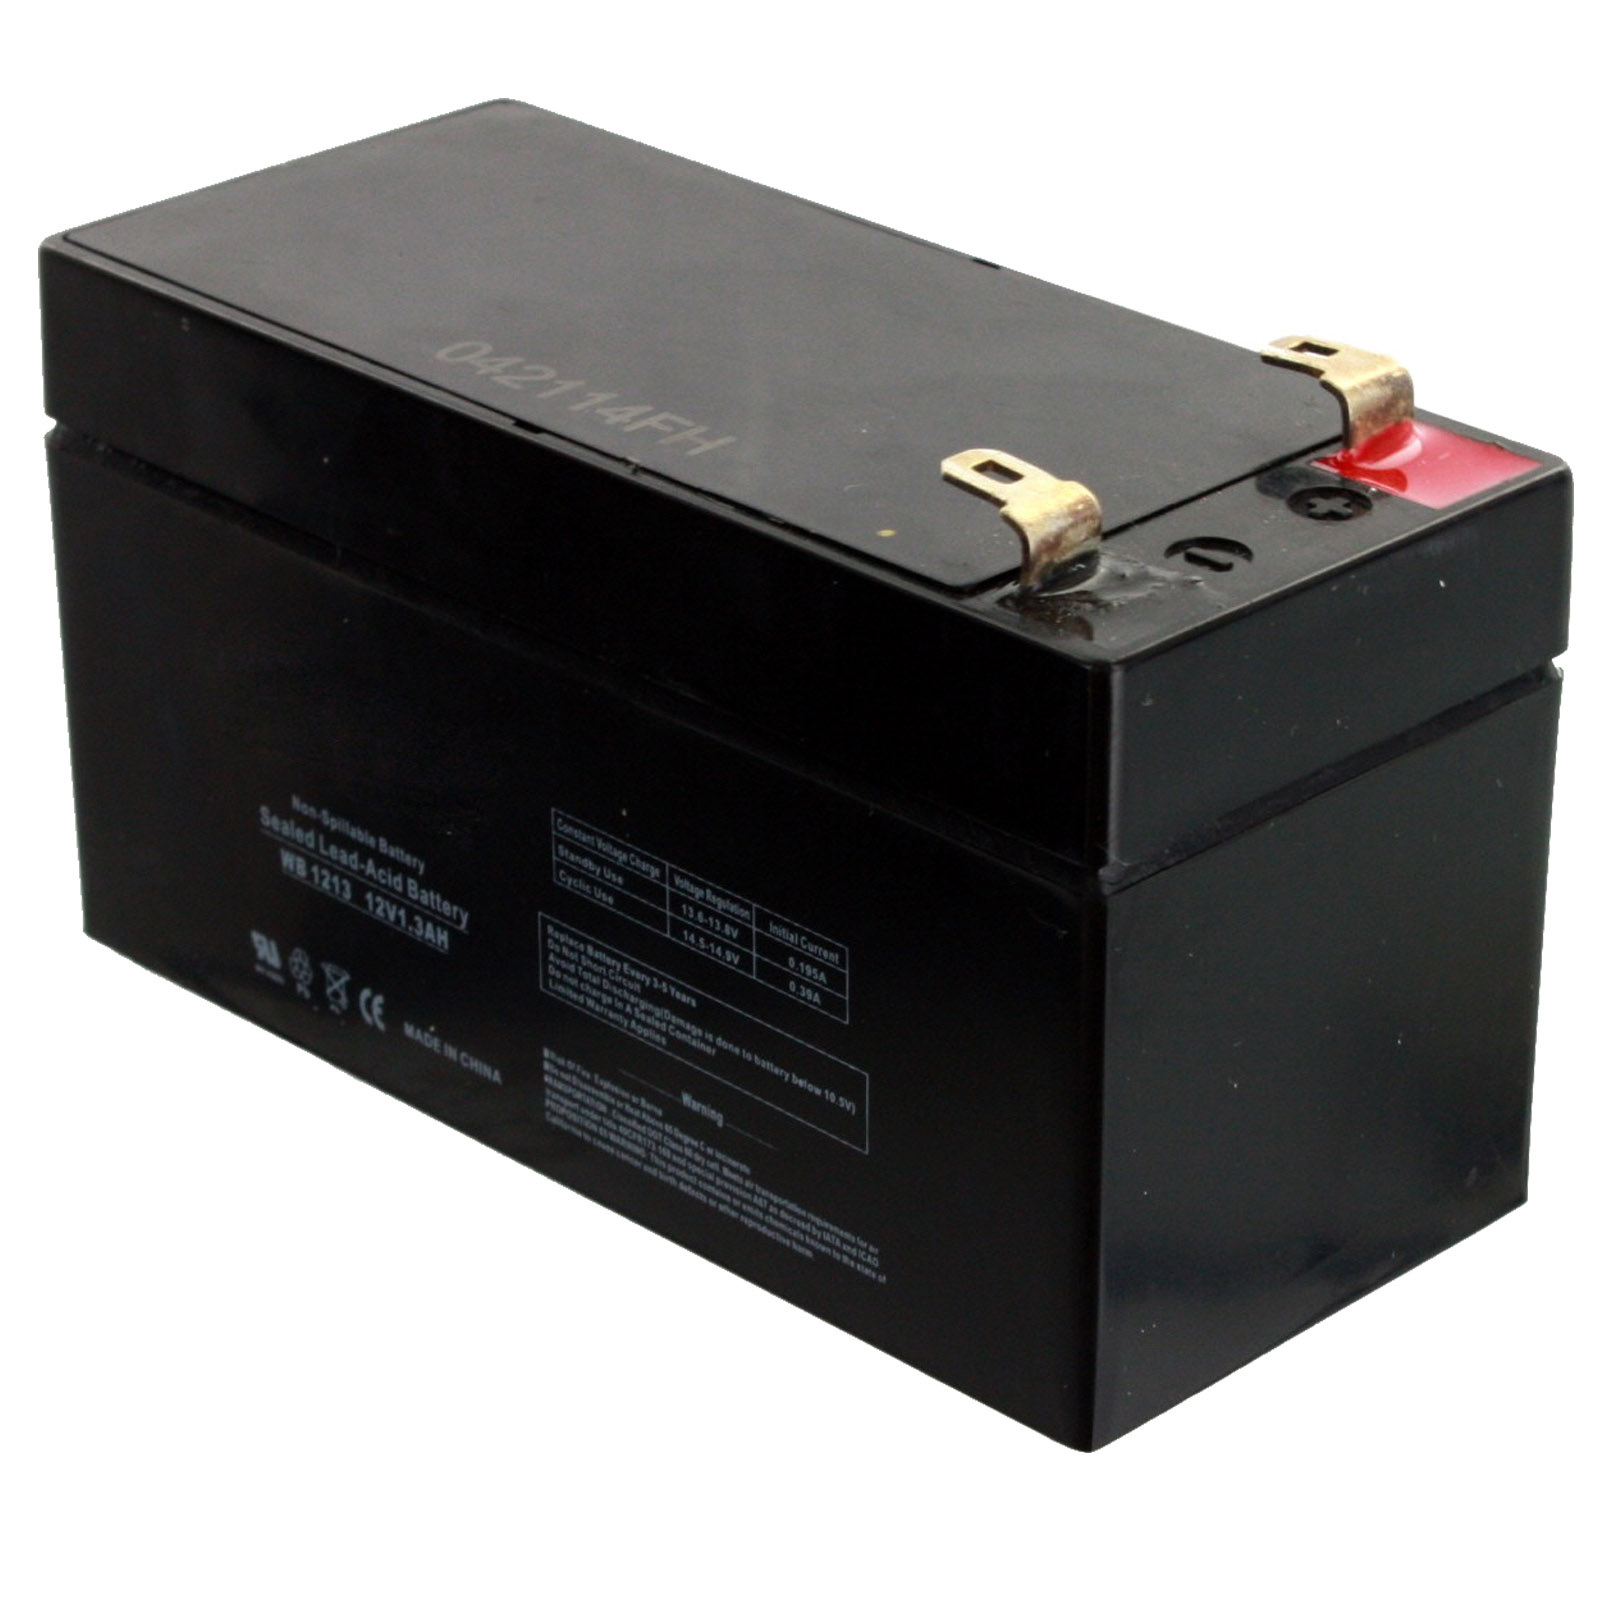 exell 12v 1 3ah sla battery rechargeable agm replaces ub1213 d5738. Black Bedroom Furniture Sets. Home Design Ideas